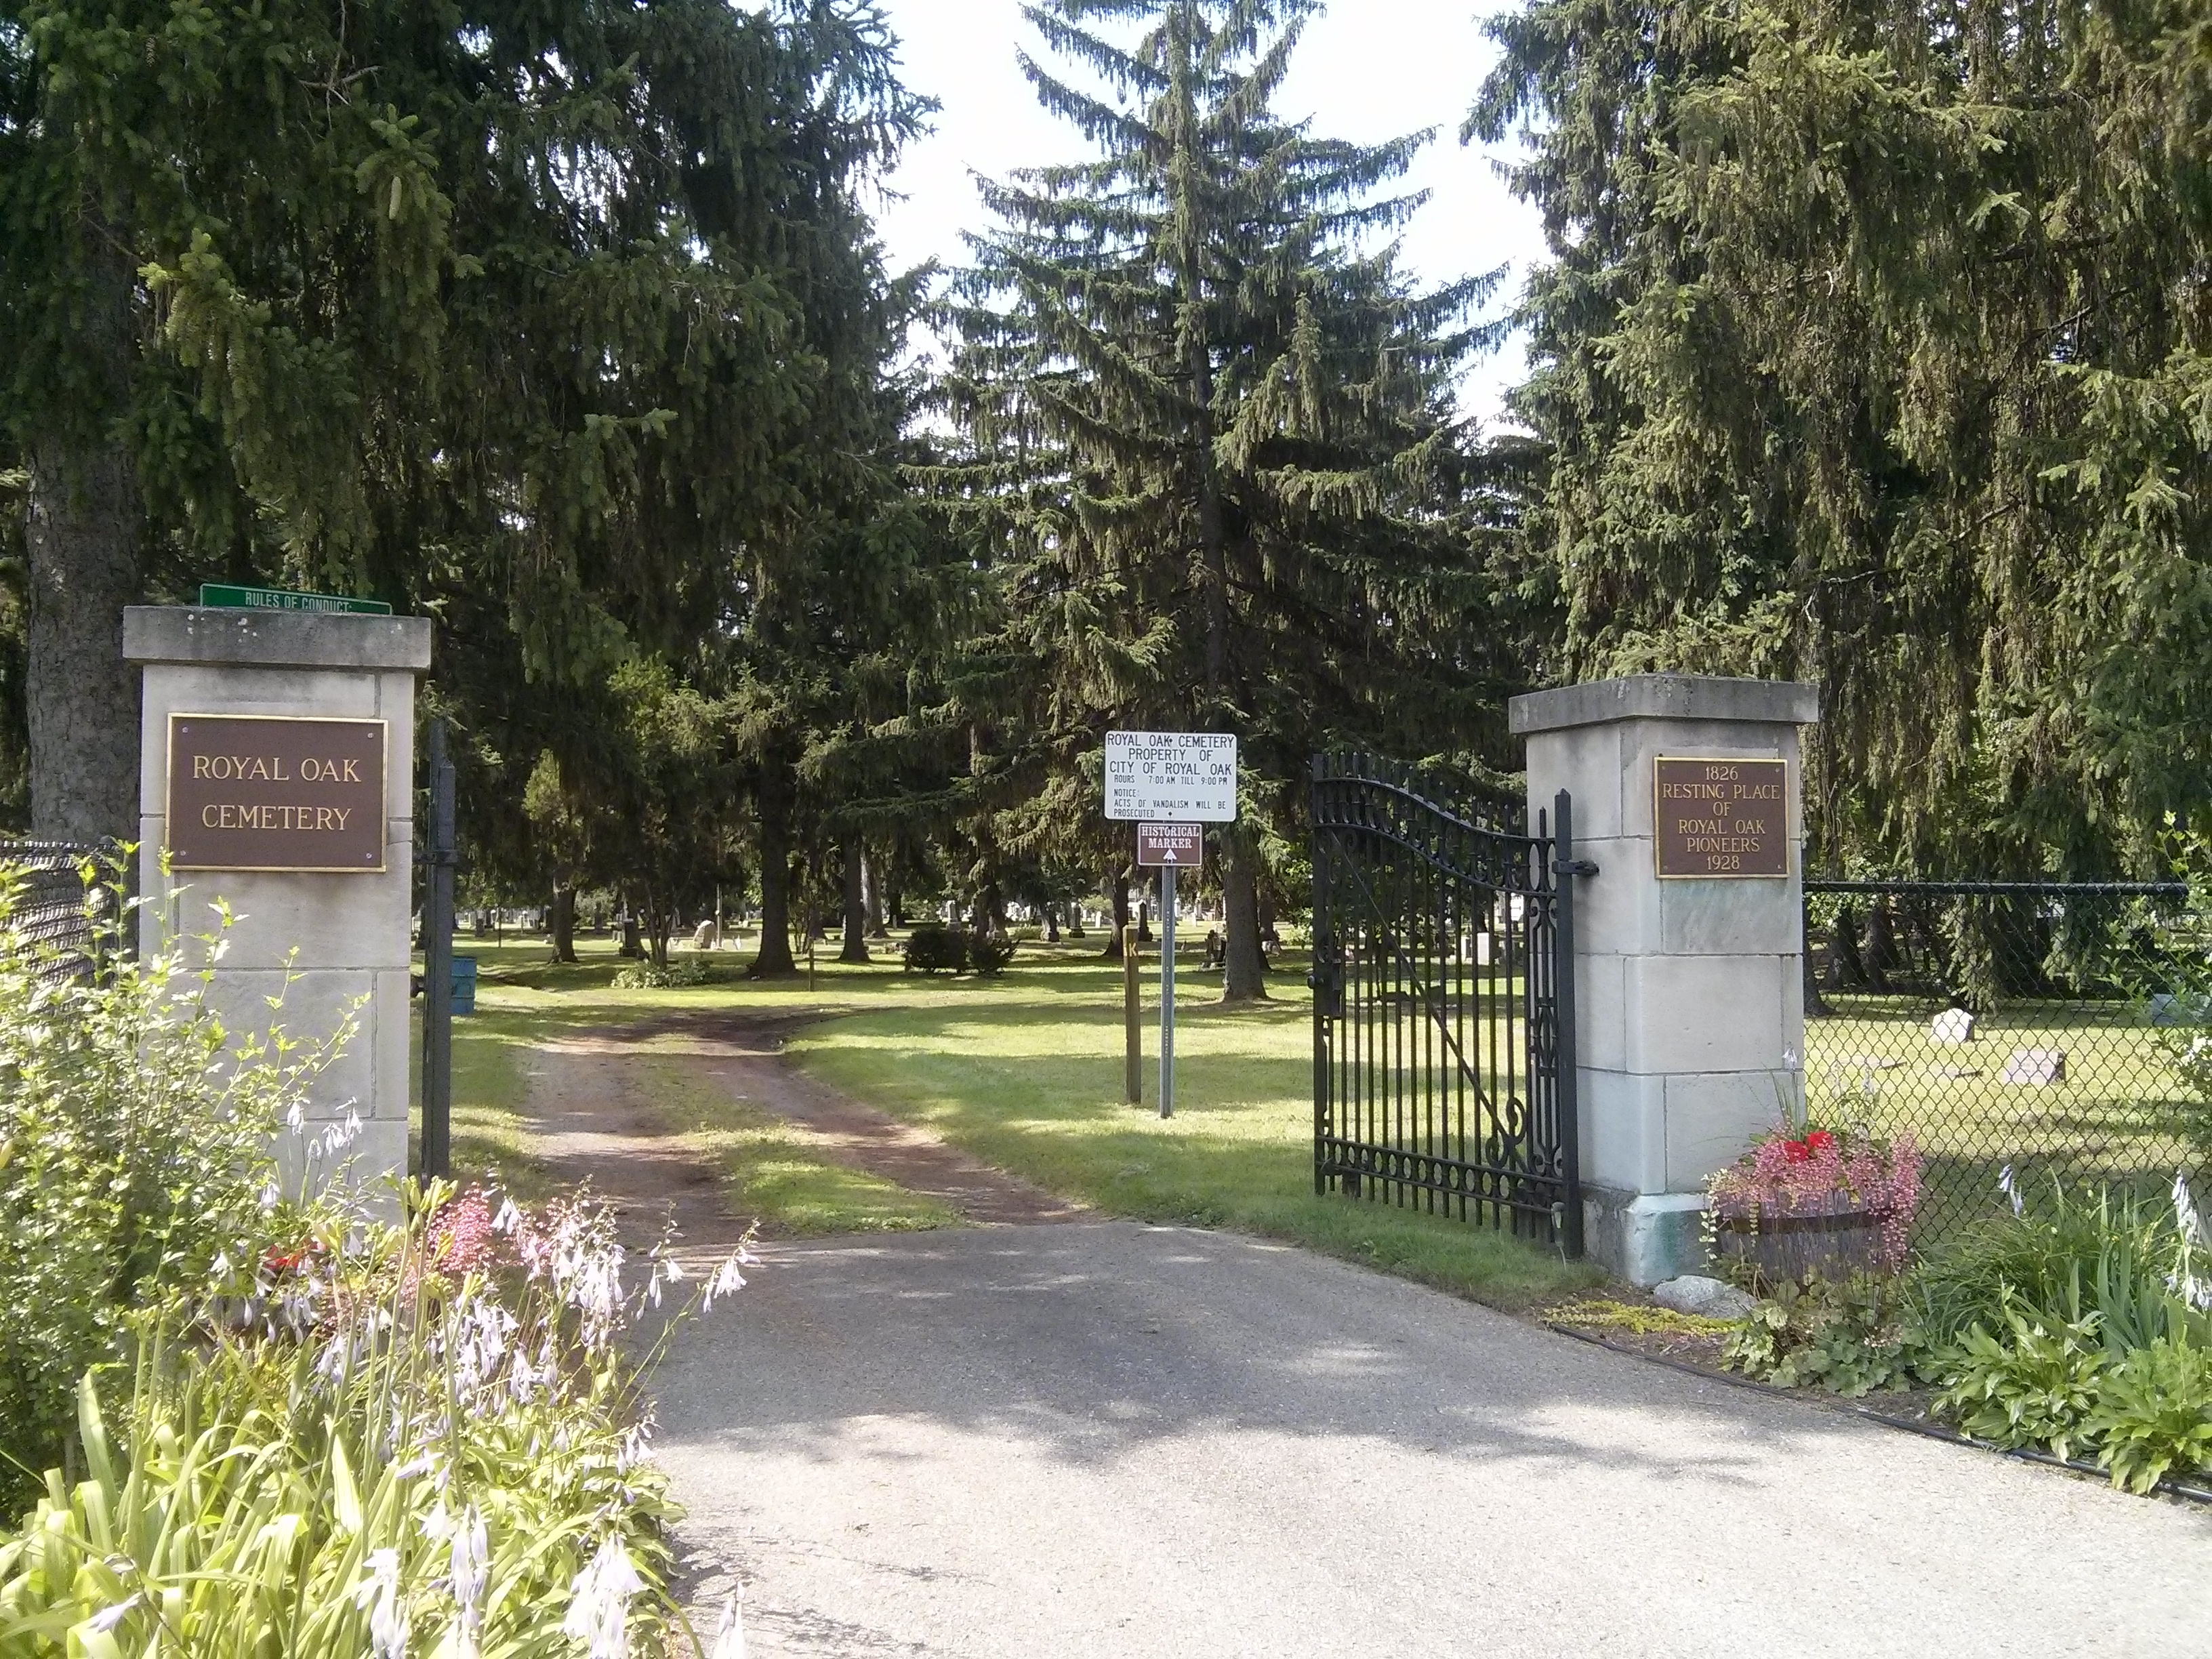 Twelve Mile Road Entrance to Royal Oak Cemetery